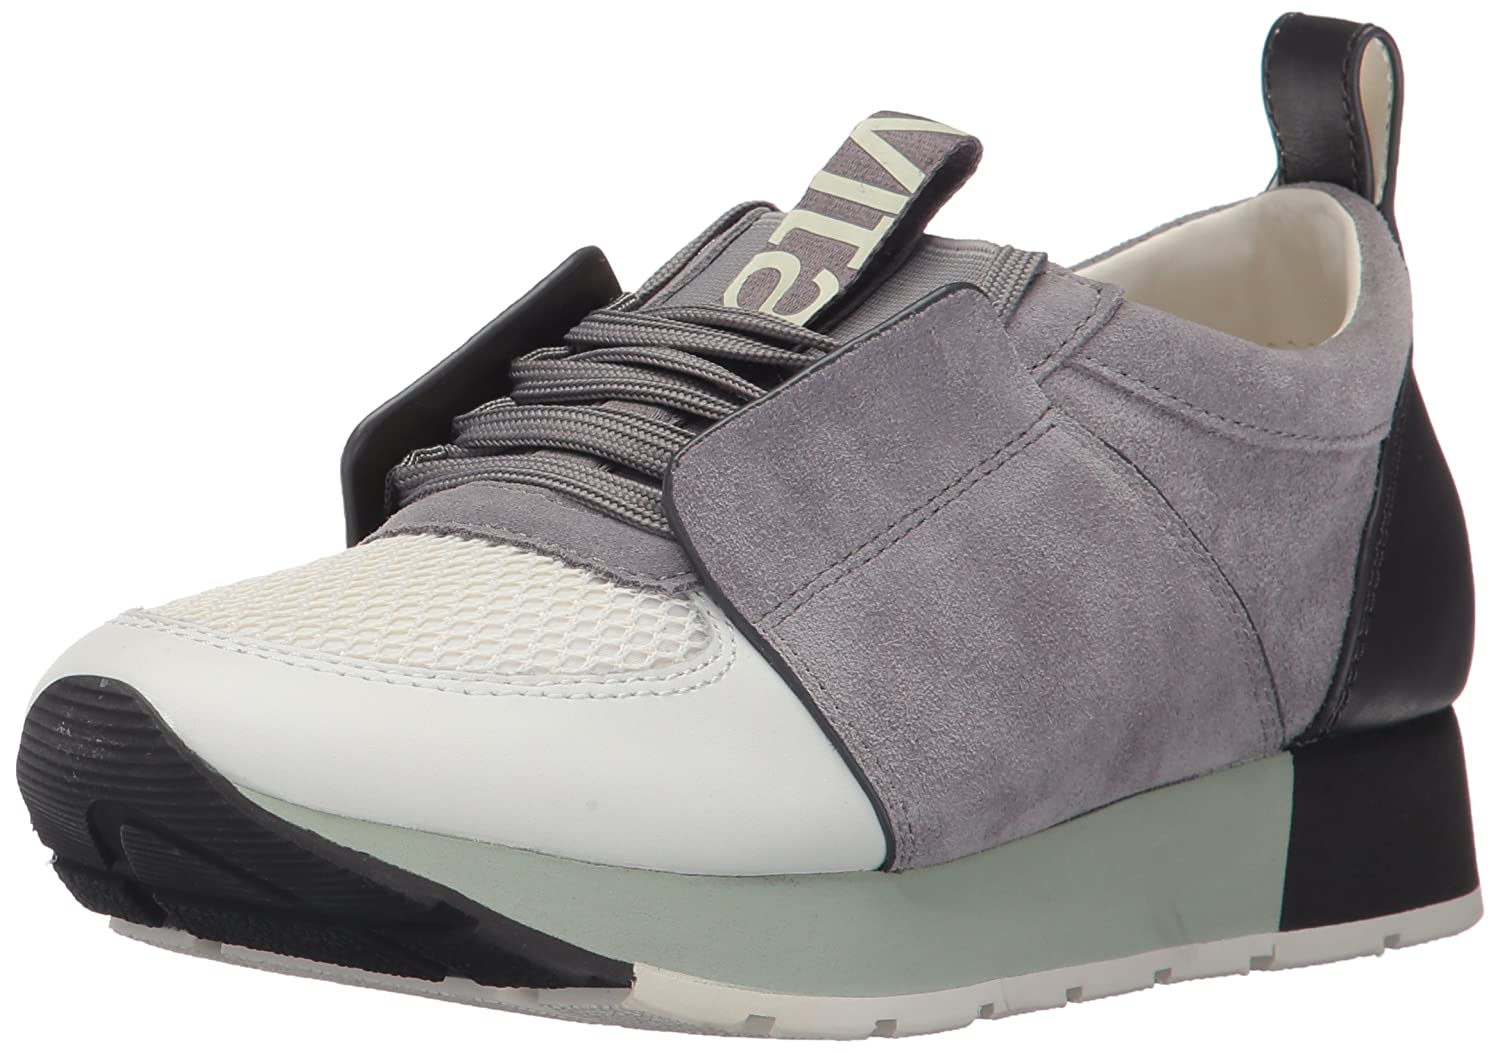 Dolce Vita Women's Yana Sneaker B071G2GQ41 10 B(M) US|Grey/White Leather